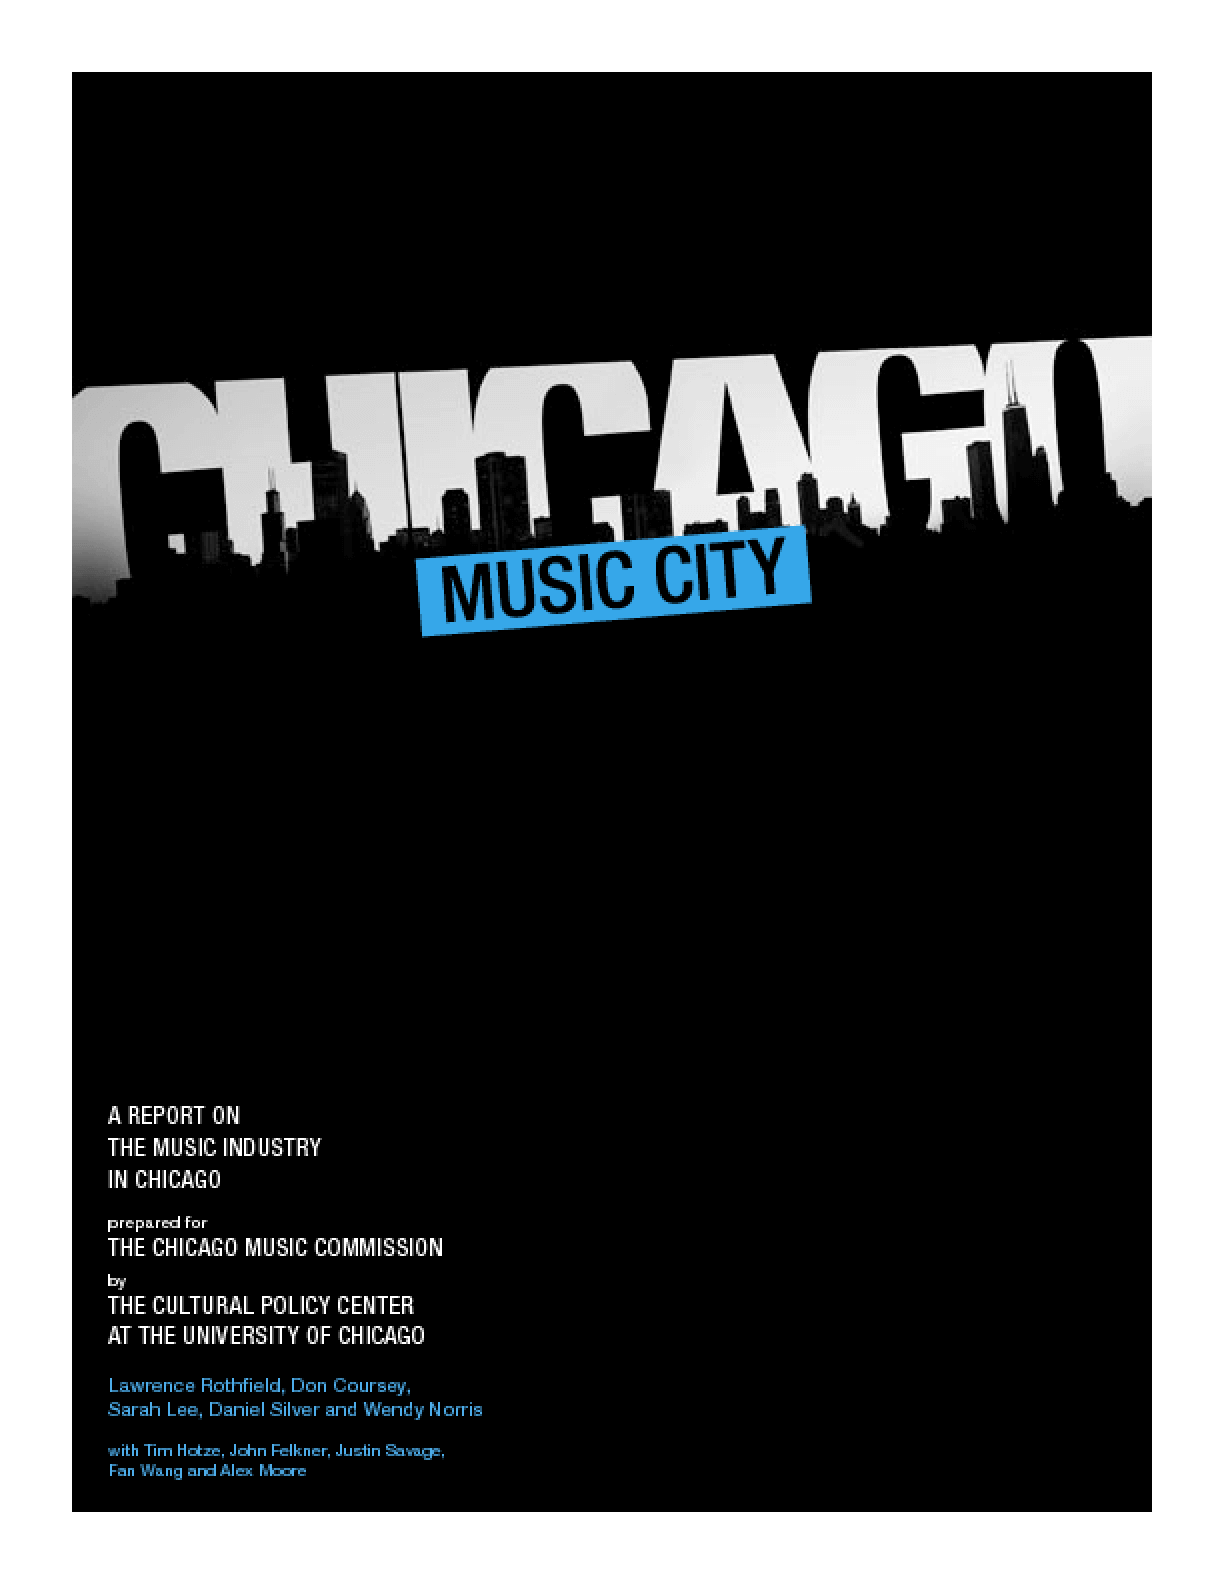 Chicago Music City